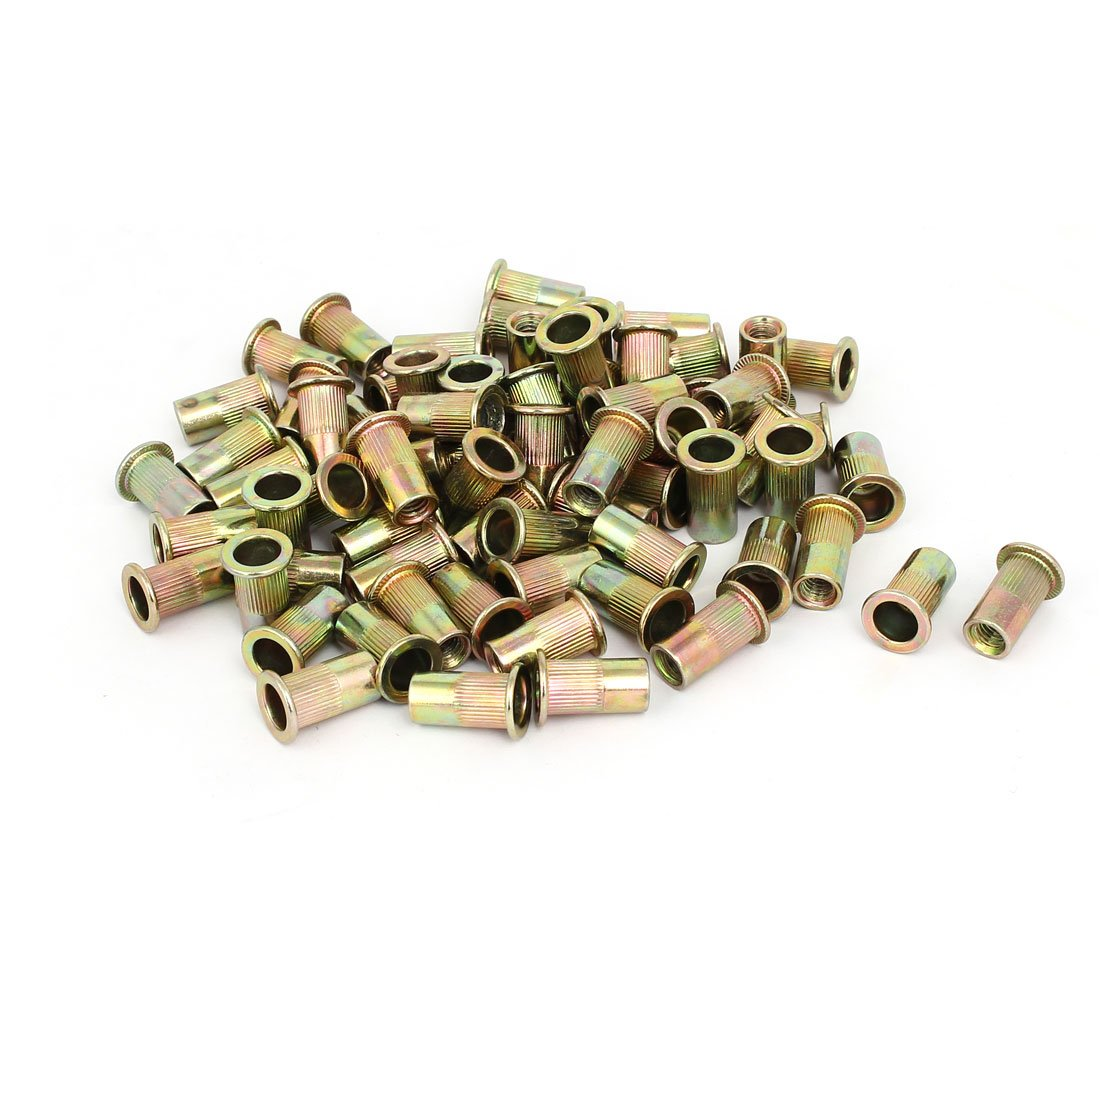 uxcell M6x18mm Metal Zinc Plated Straight Knurled Rivet Nut Insert Bronze Tone 70pcs